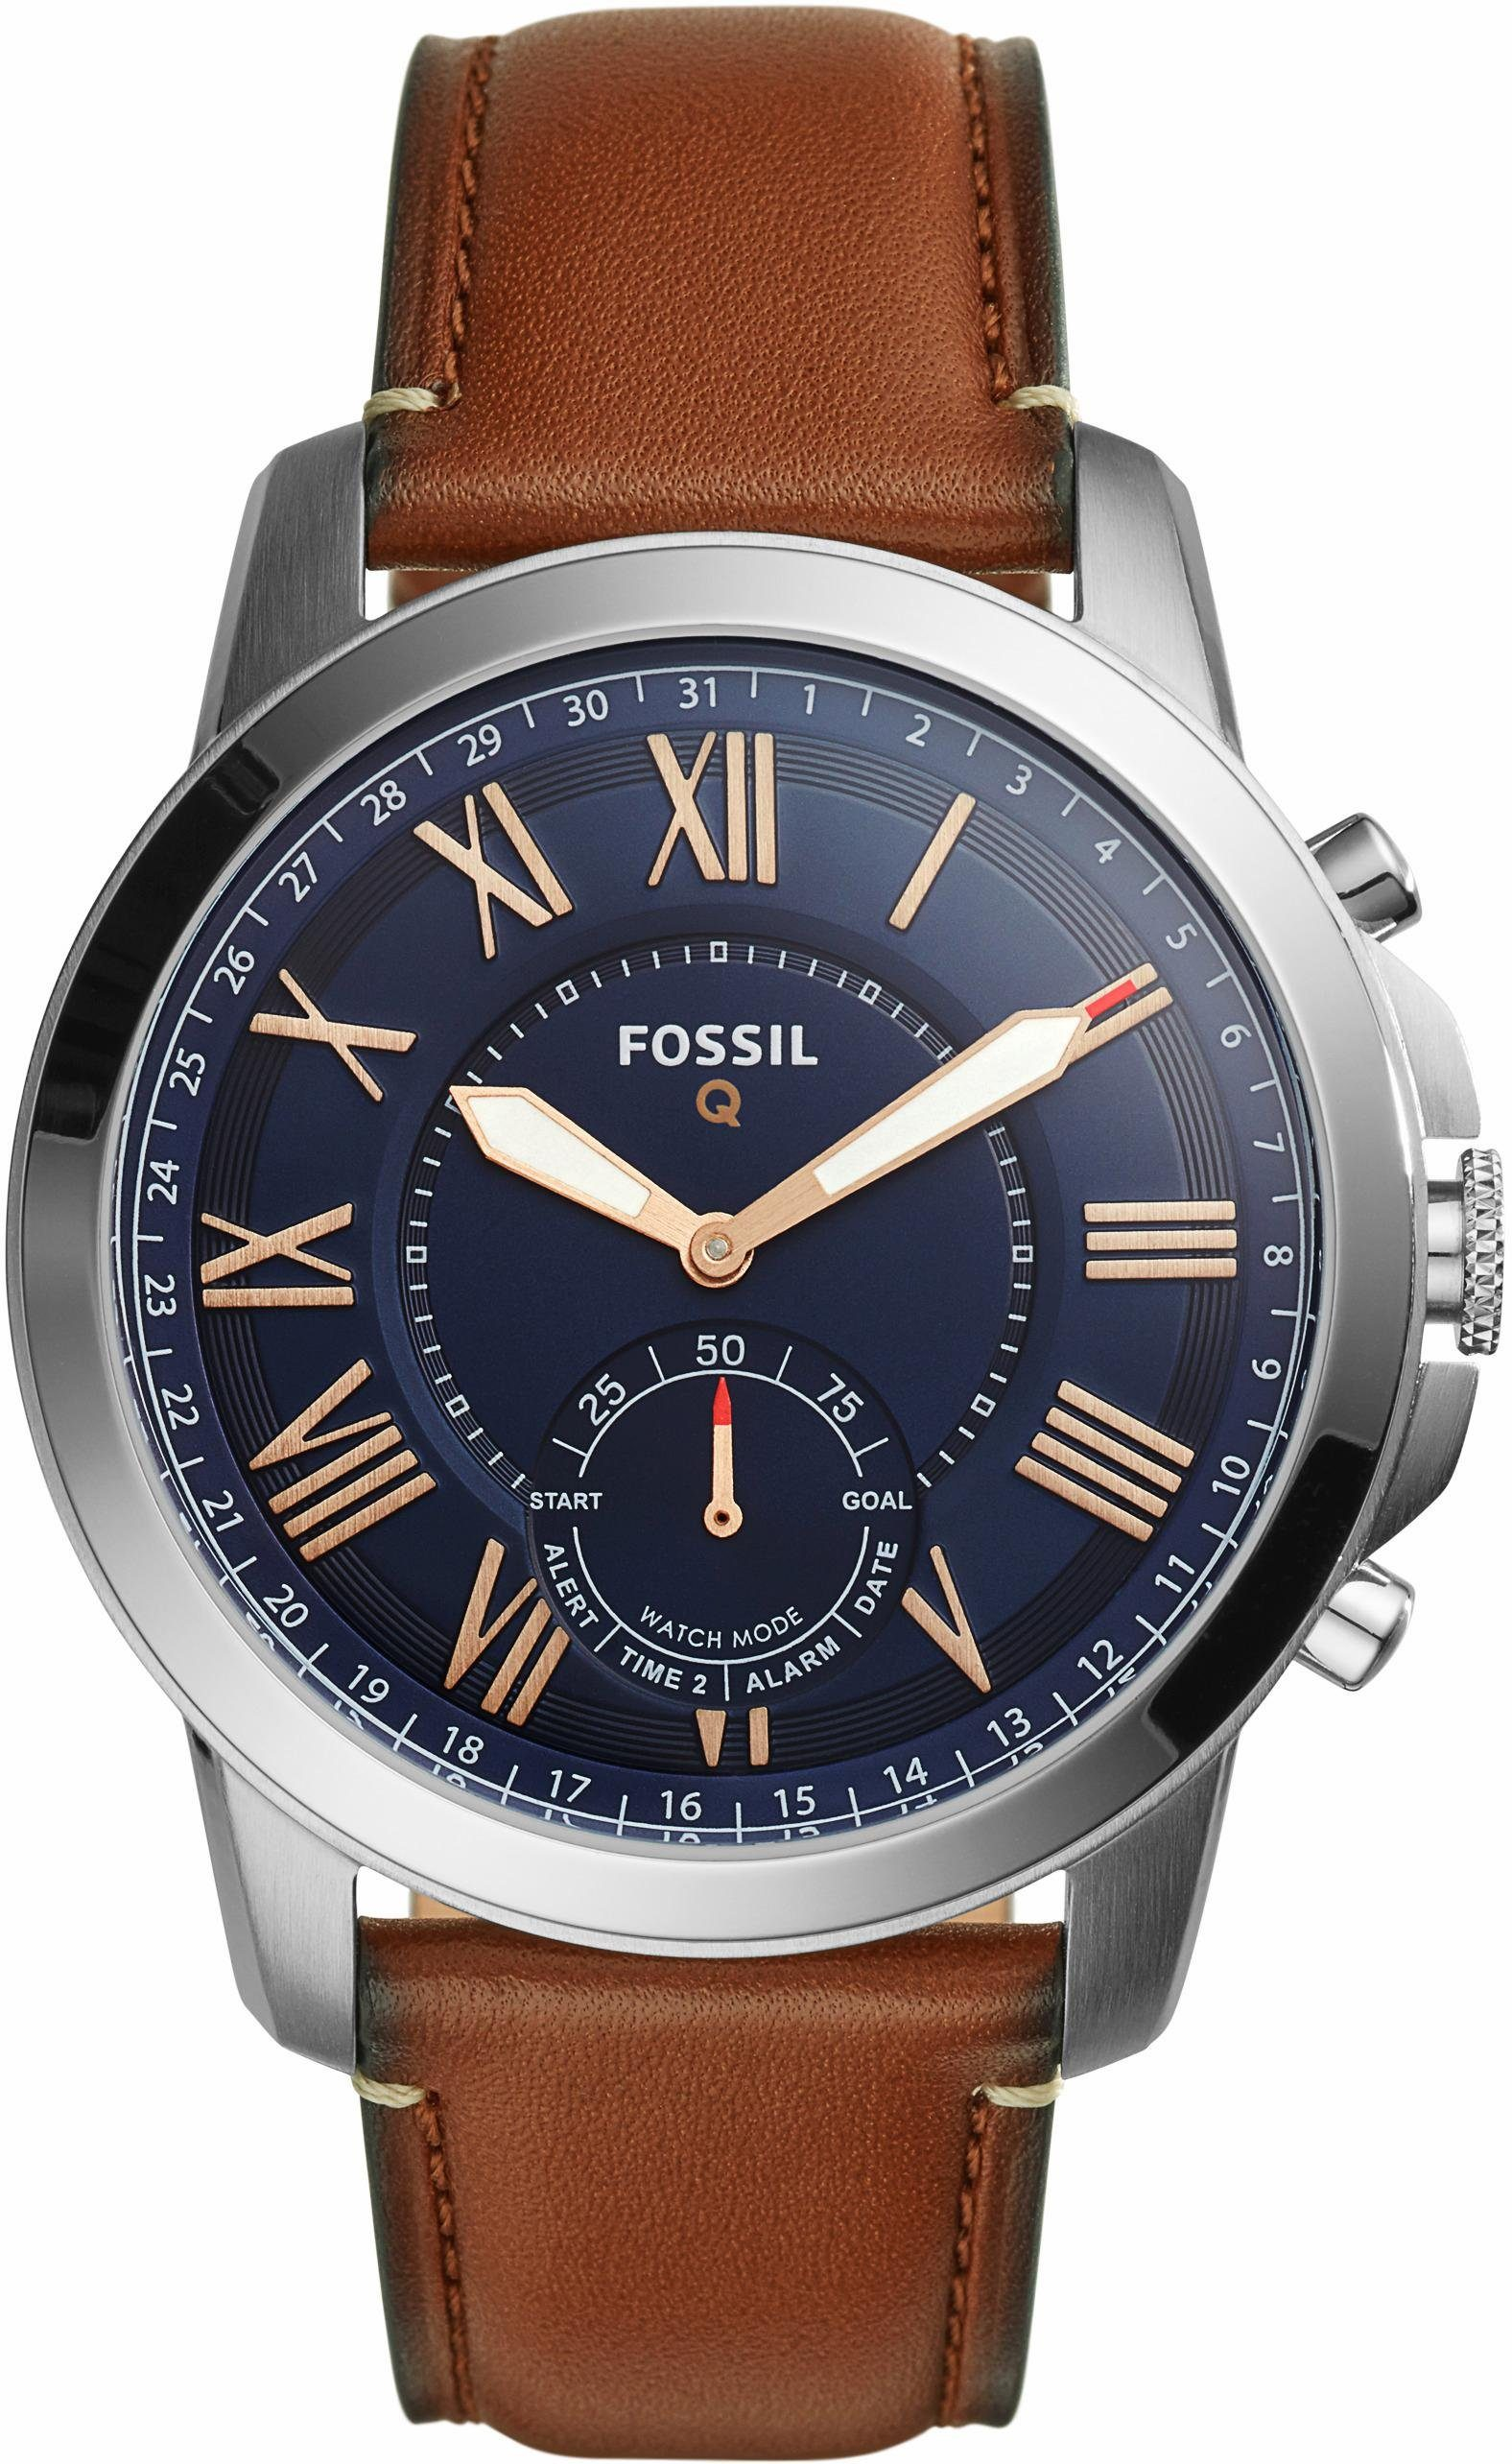 FOSSIL Q Q GRANT, FTW1122 Smartwatch (Android Wear)